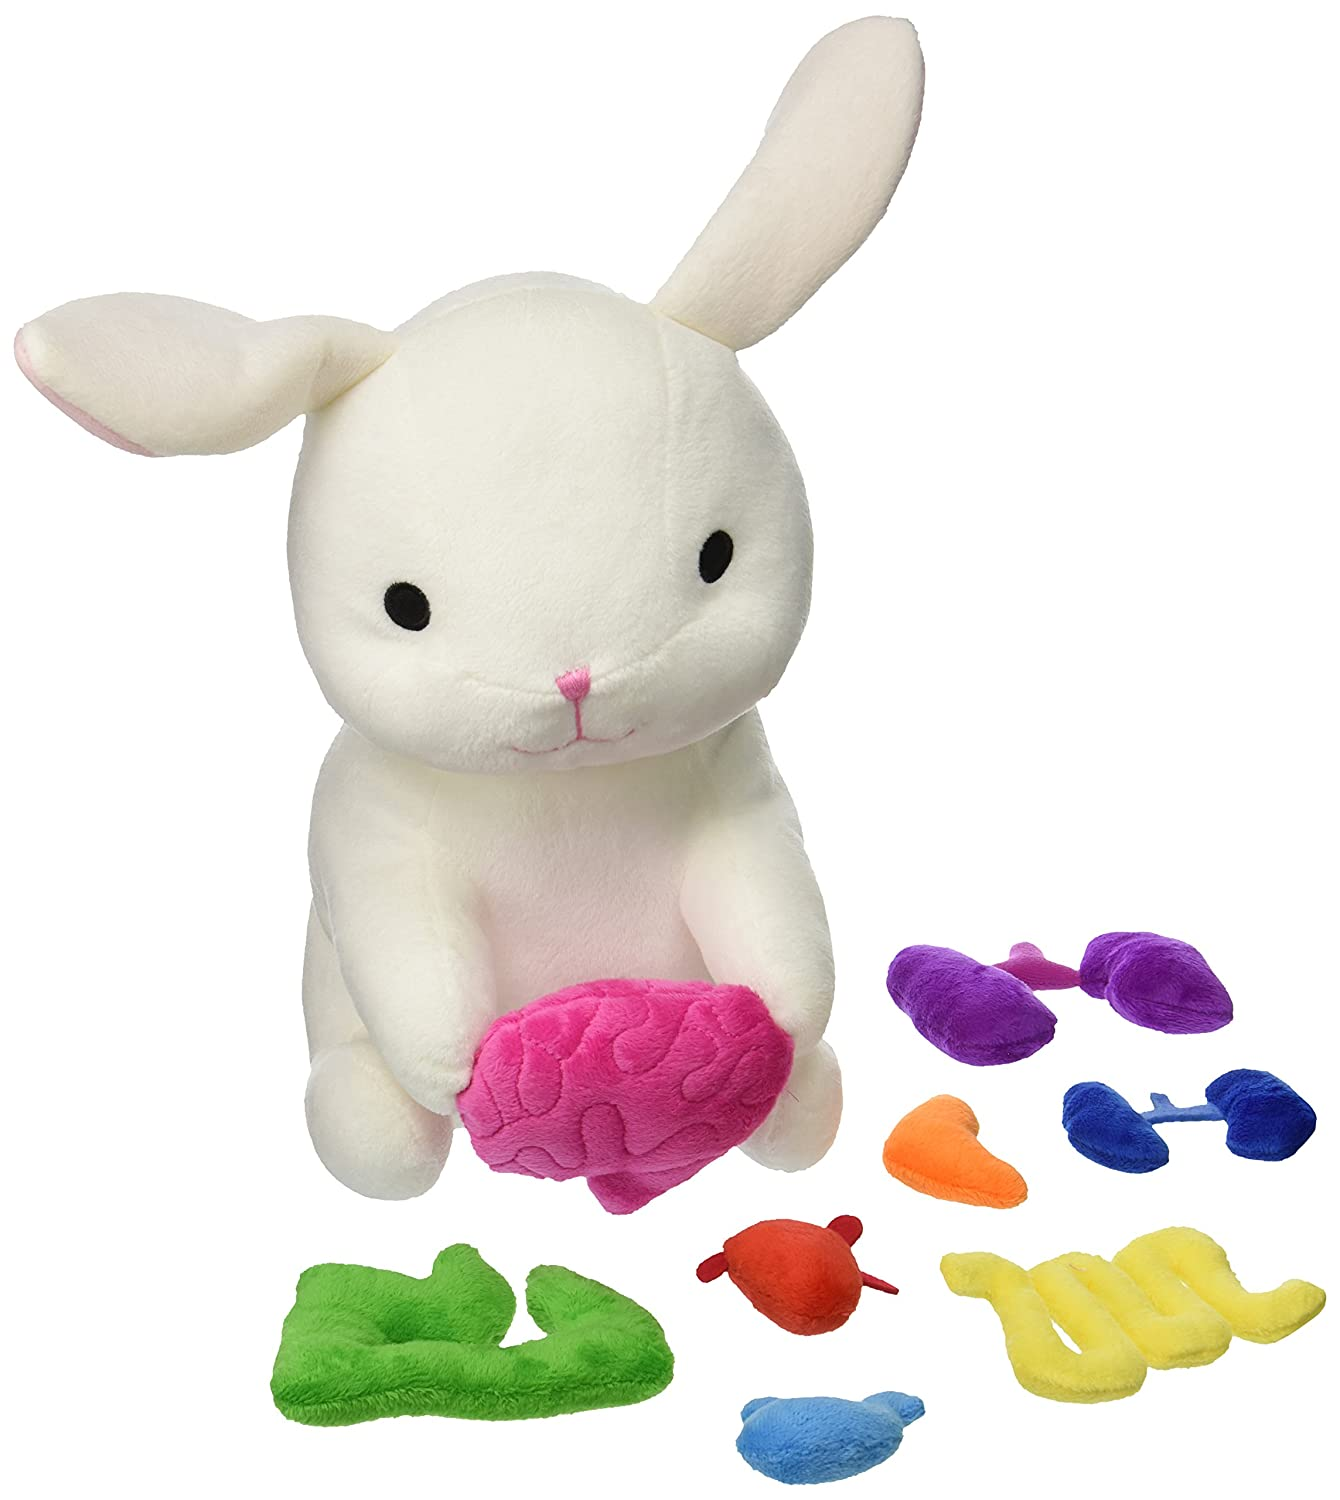 Amazon.com: Giblets White Plush Stuffed Bunny with Removable Organs ...